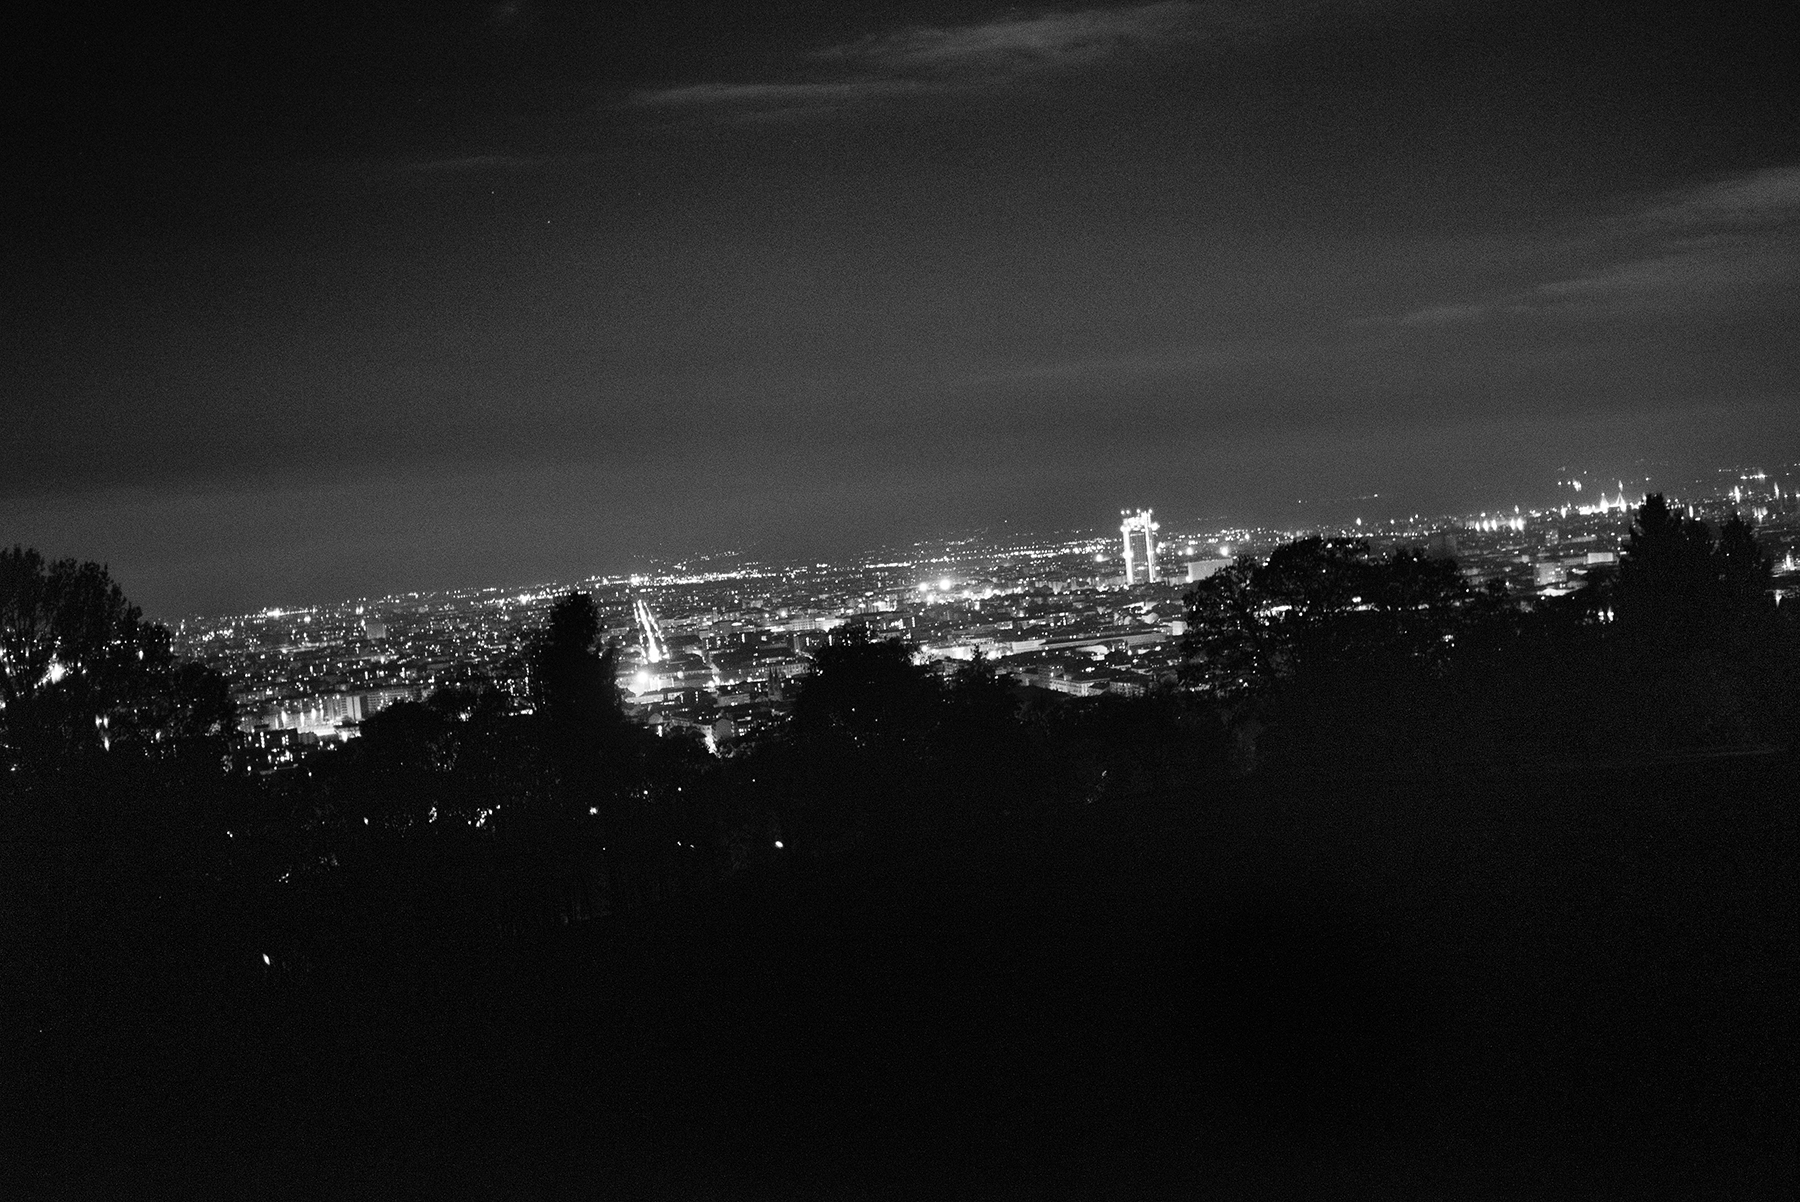 A view of the city of Turin at night from its surrounding hills, Italy; November 2018.Since the beginning of the XX century, Public Baths in Turin played a key role in mitigating the systemic housing crisis, worsened in the past years due to the city�s economic downfall.